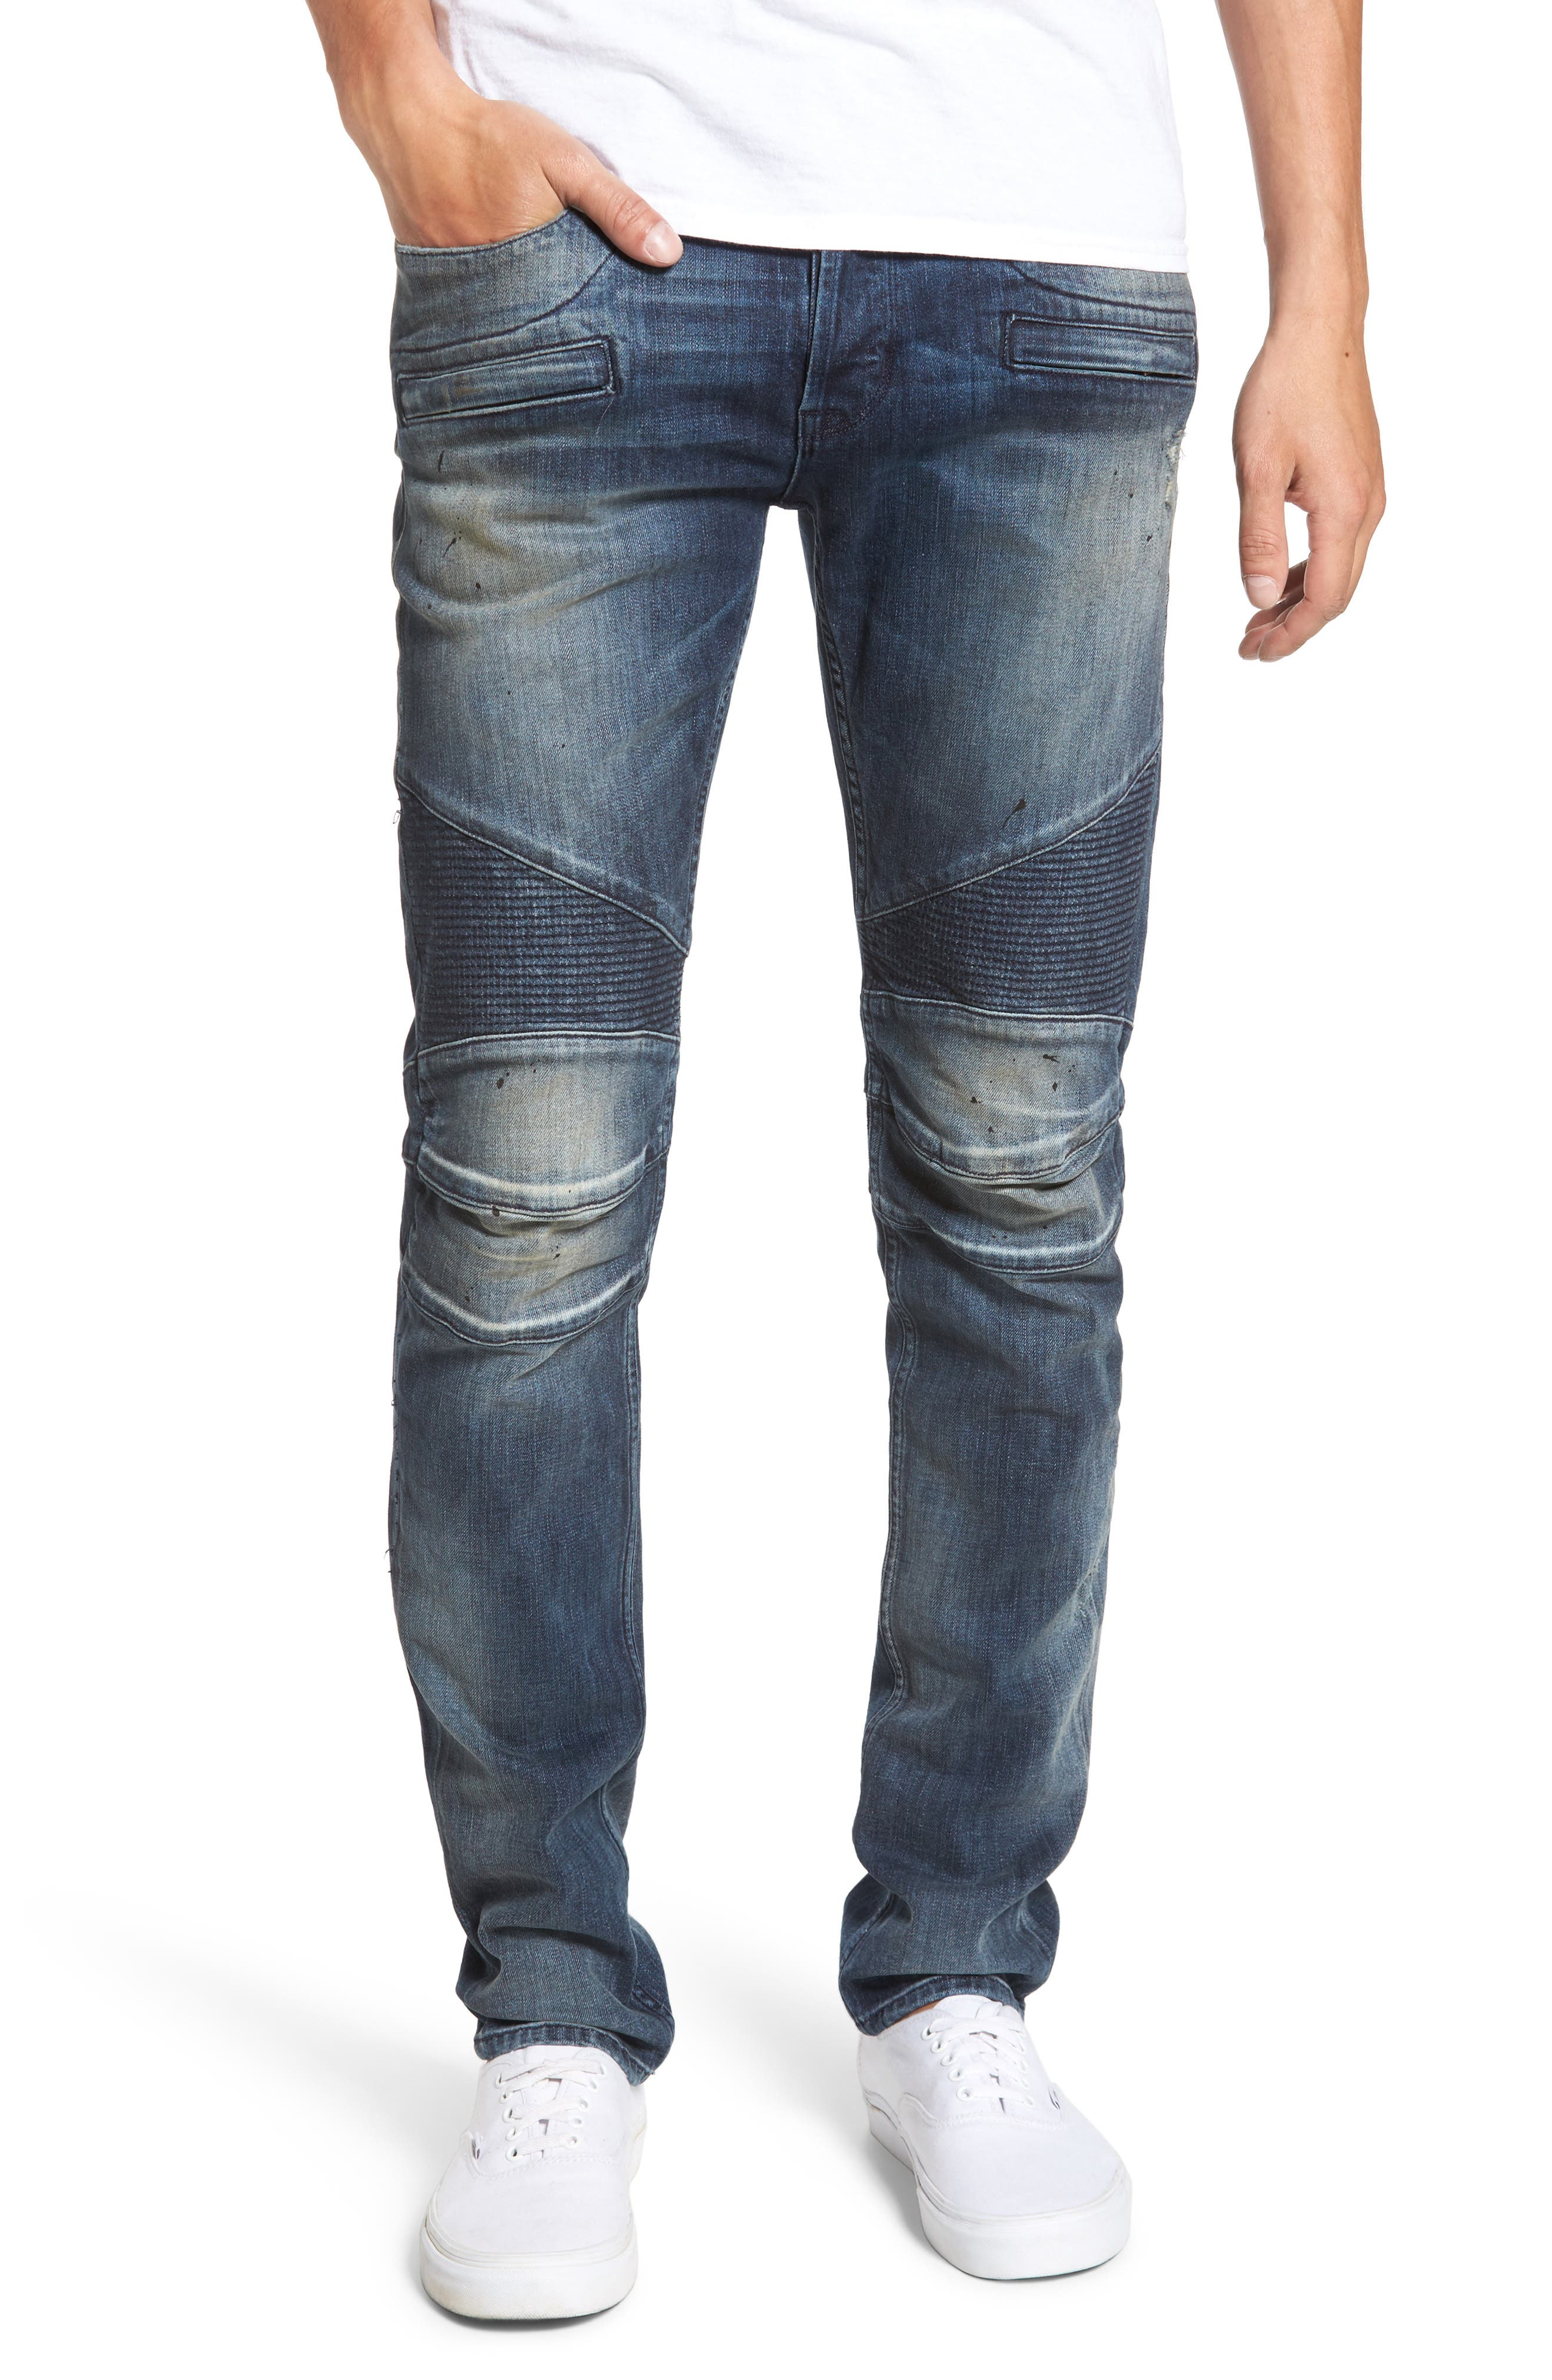 Alternate Image 1 Selected - Hudson Jeans Blinder Biker Moto Skinny Fit Jeans (Babylon)